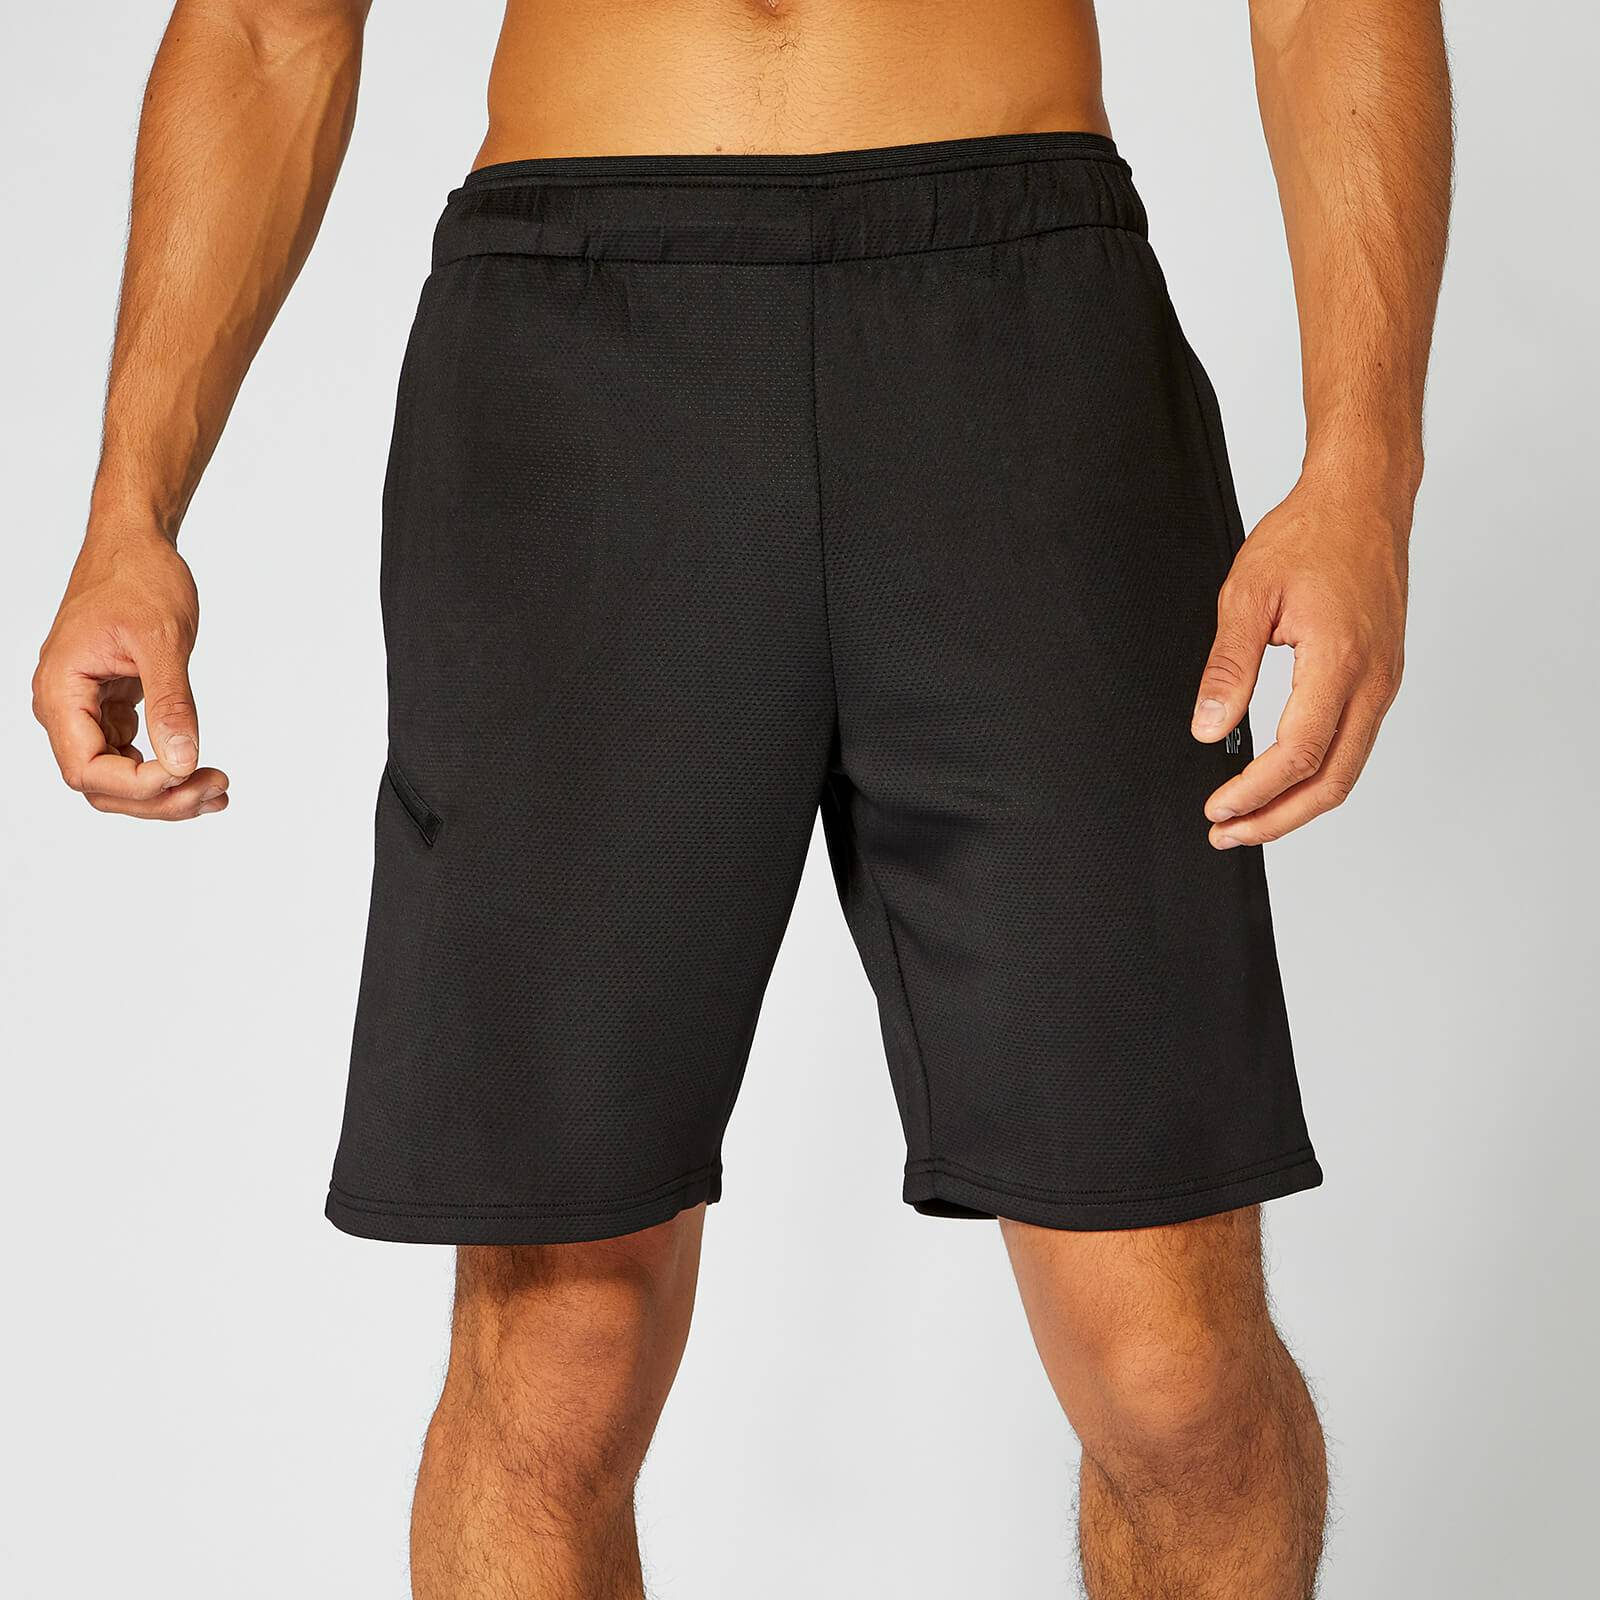 Myprotein MP Luxe Therma Shorts - Black - S